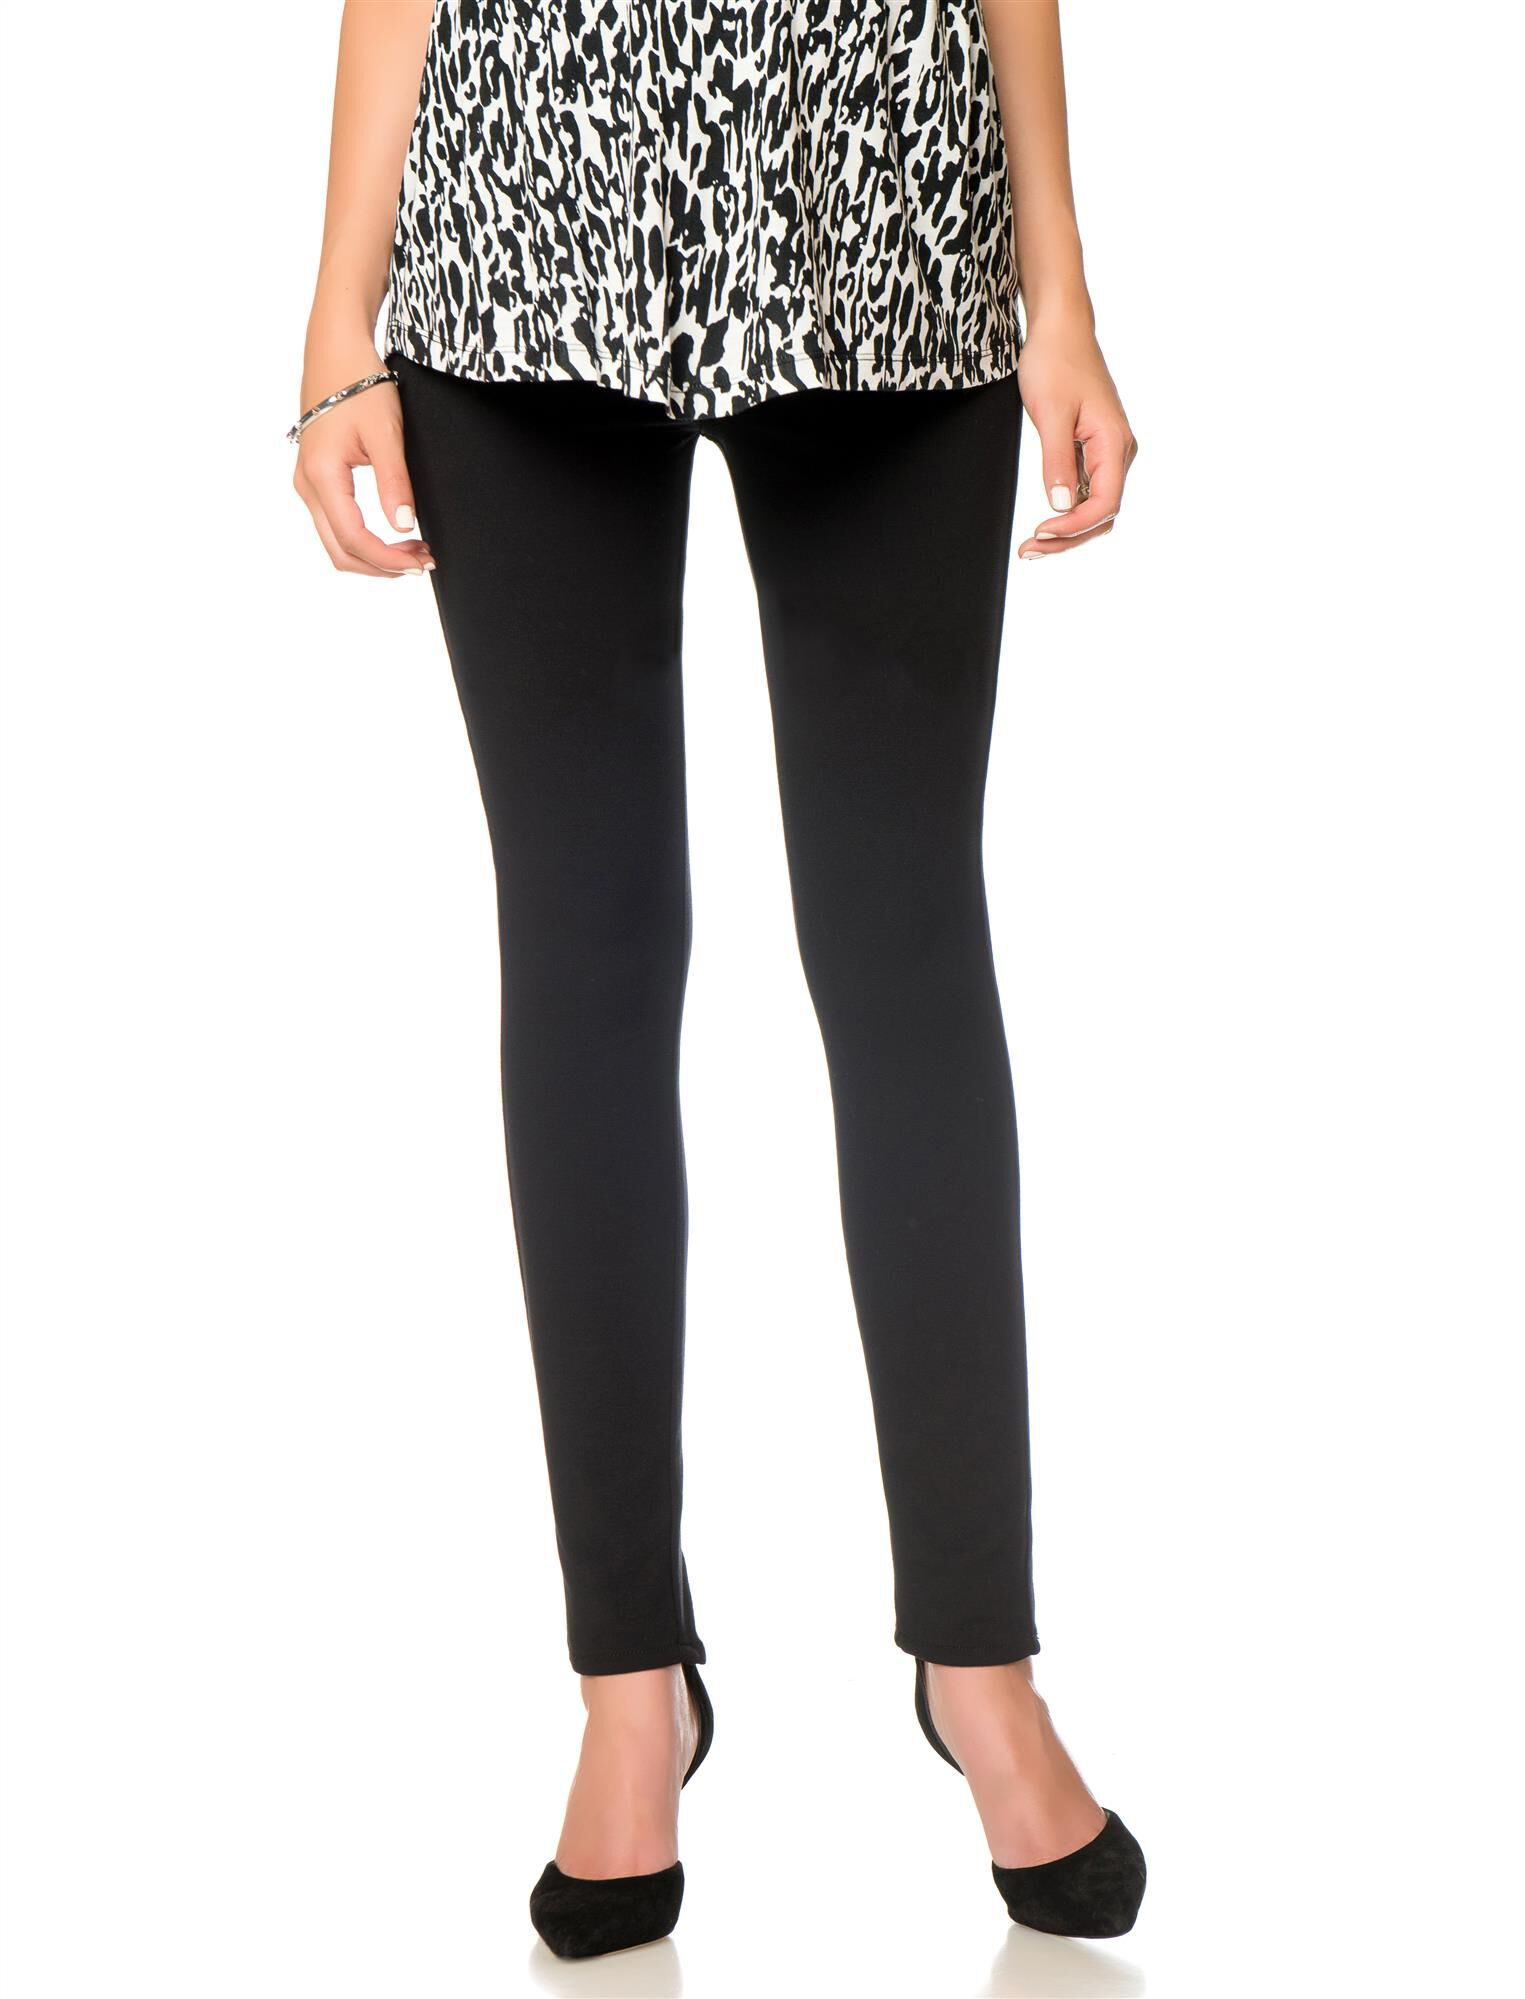 7 For All Mankind Secret Fit Belly Ponte Maternity Pants